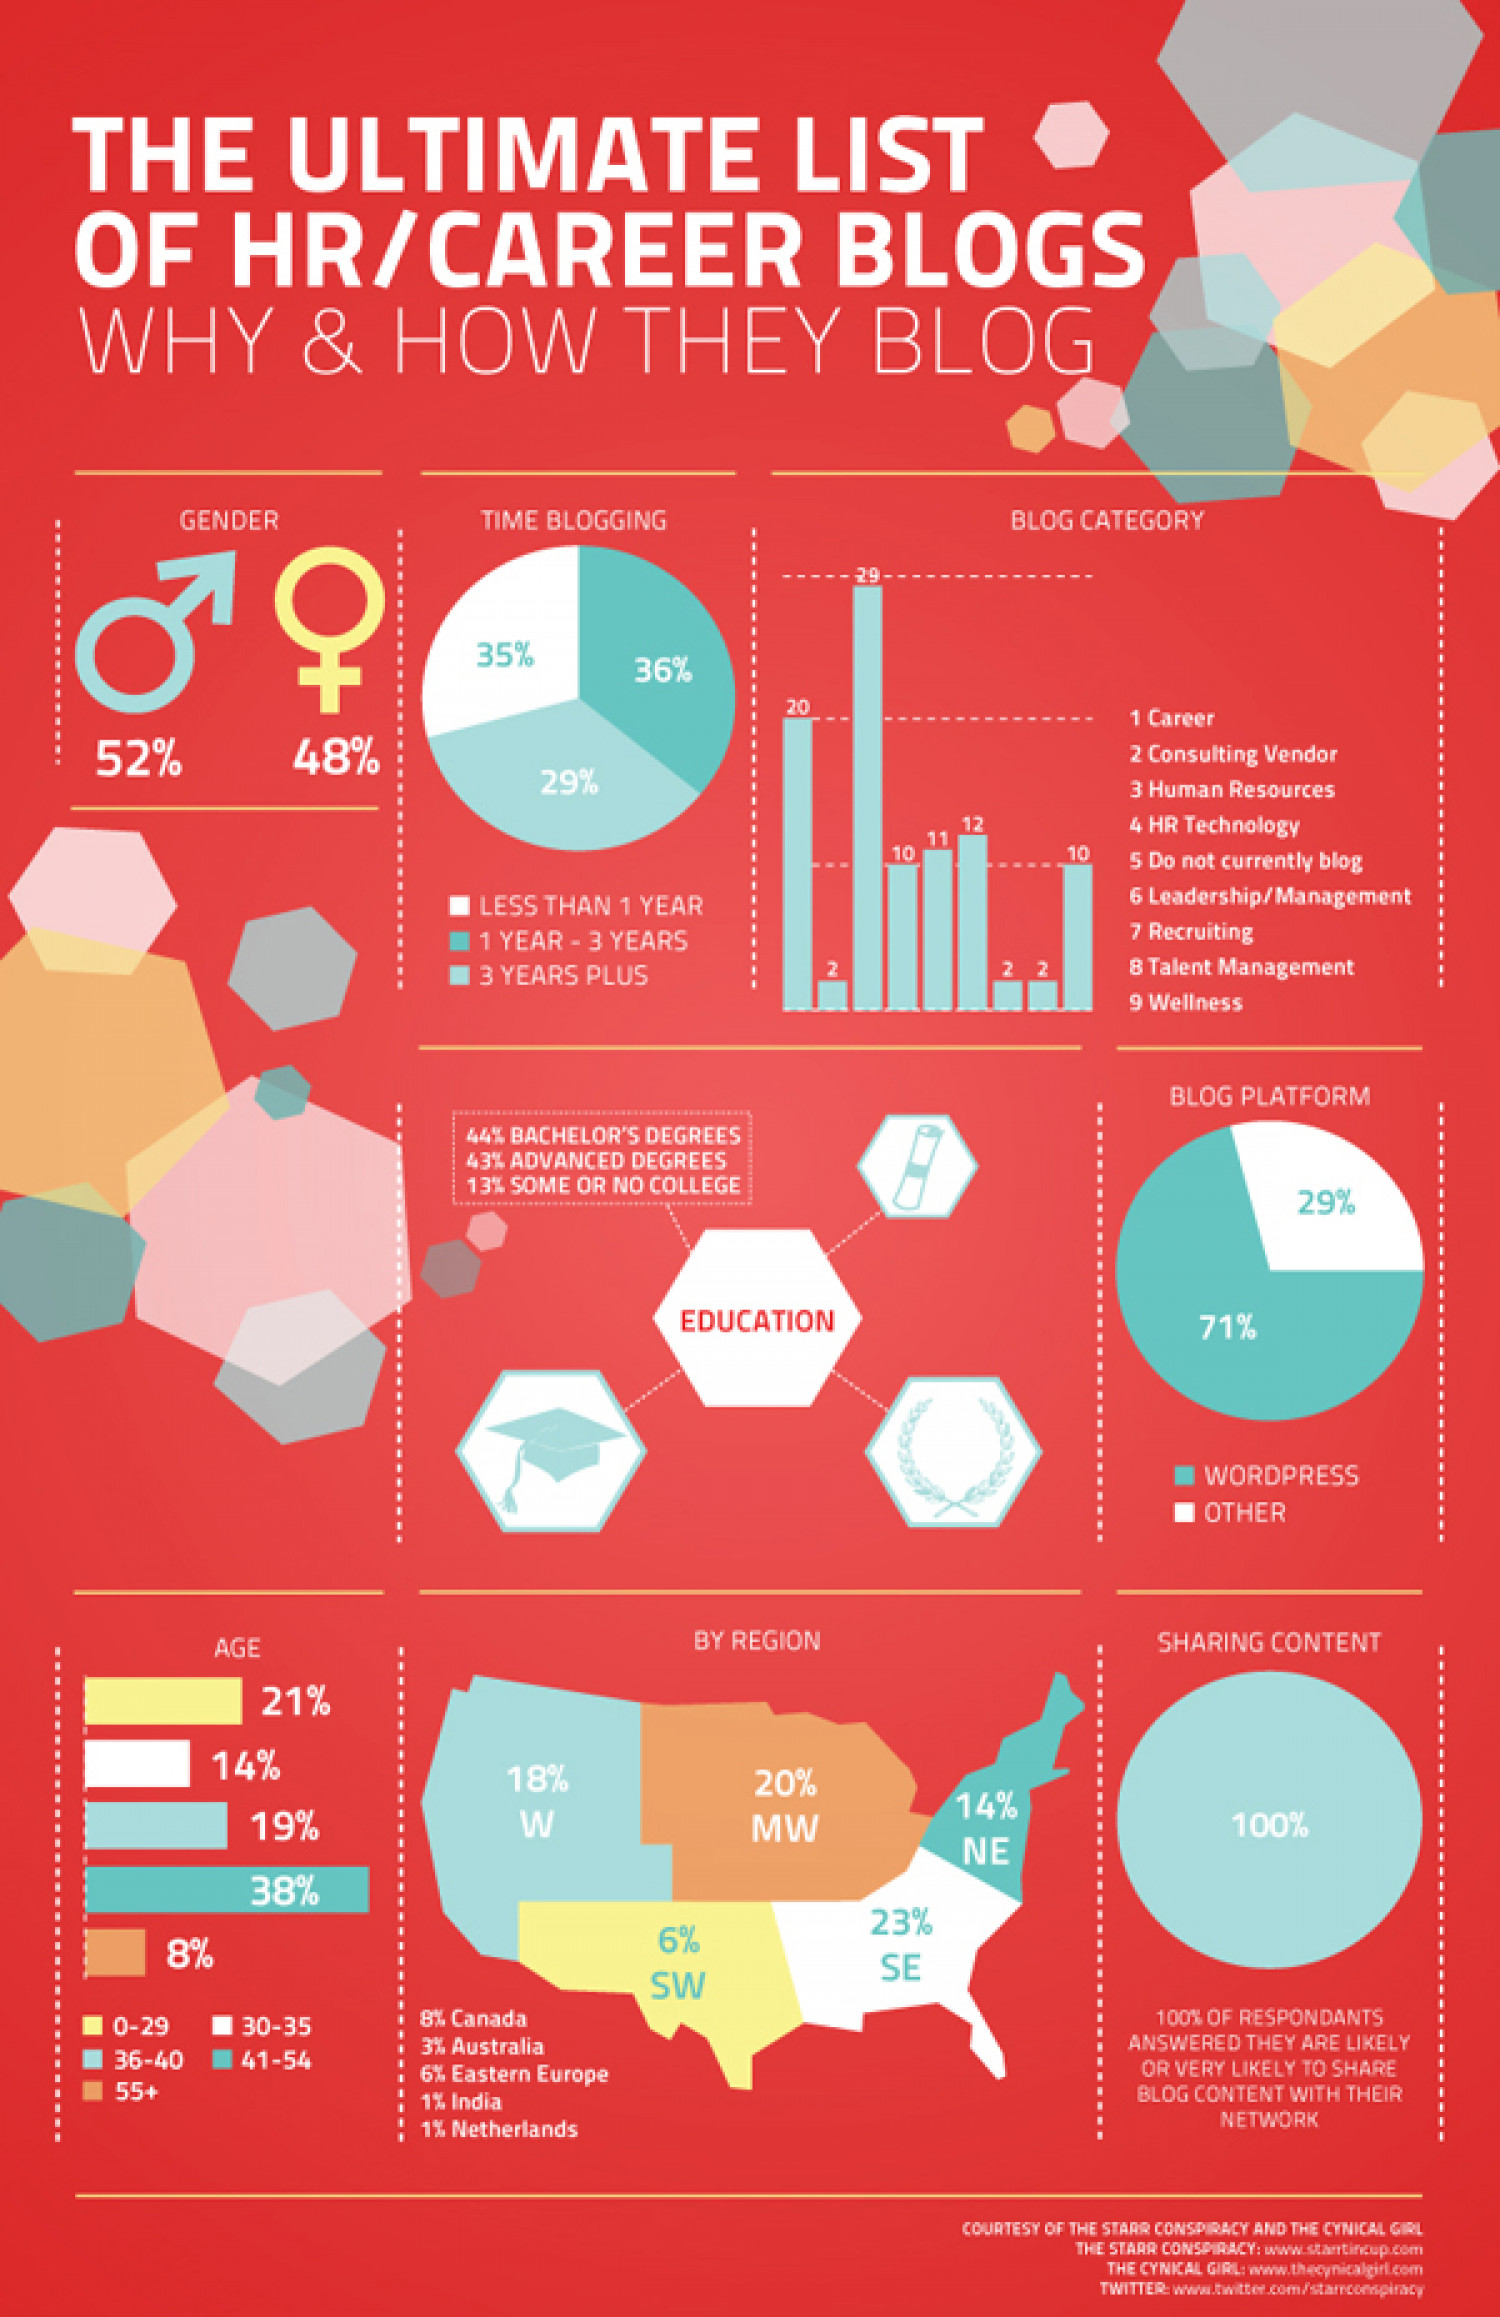 The Ultimate List of HR/Career Blogs Infographic